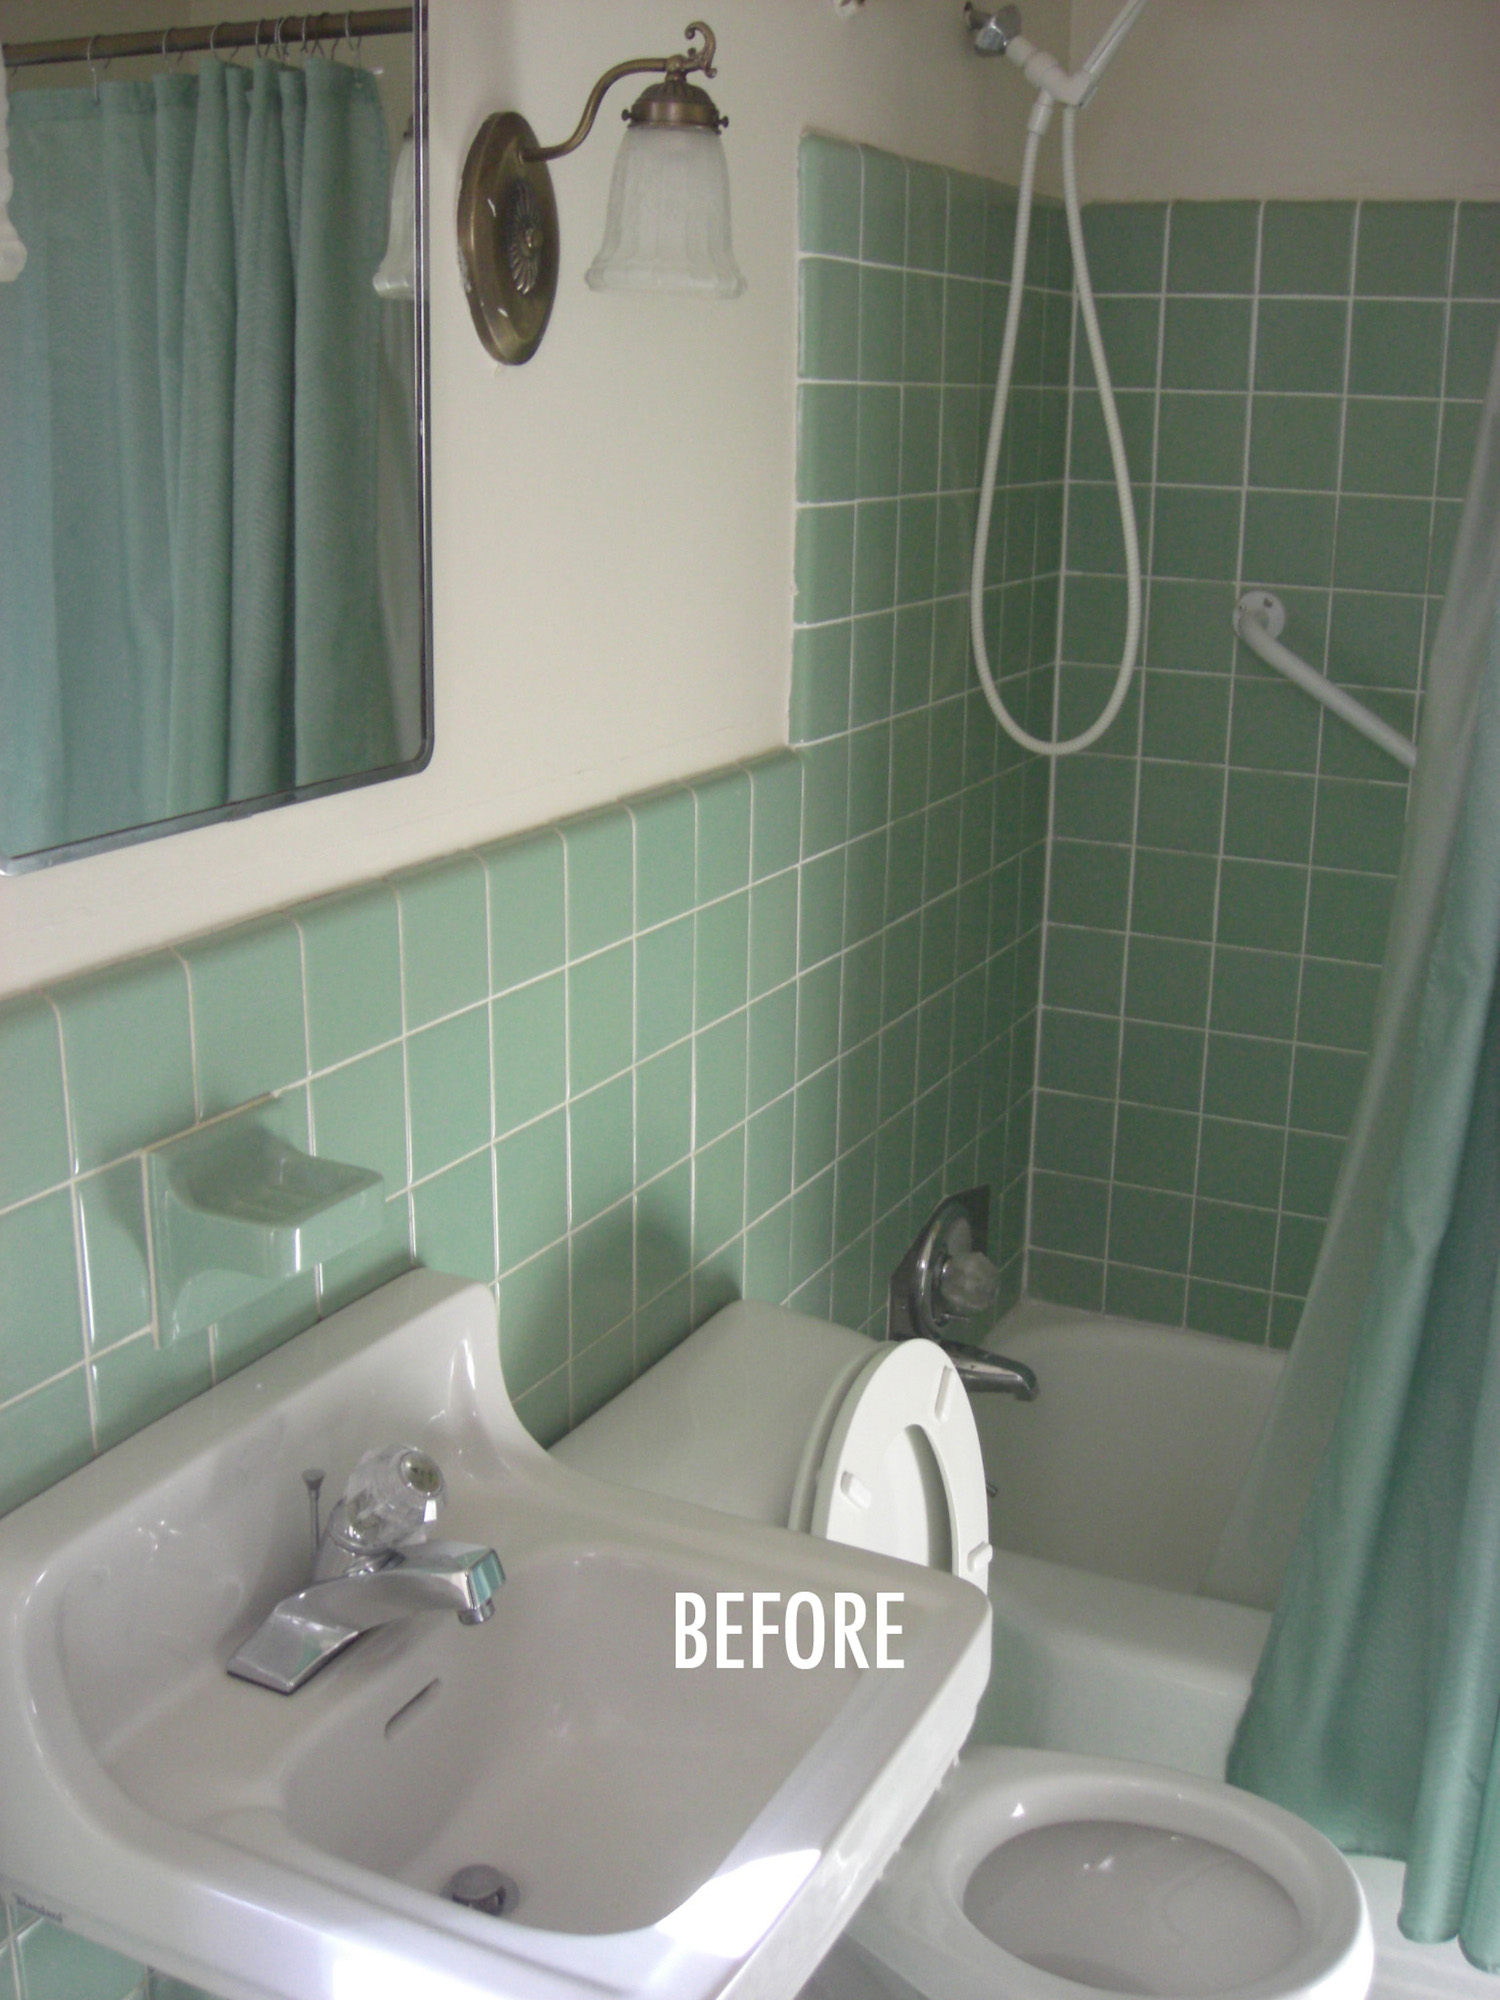 E master bathroom before.jpg